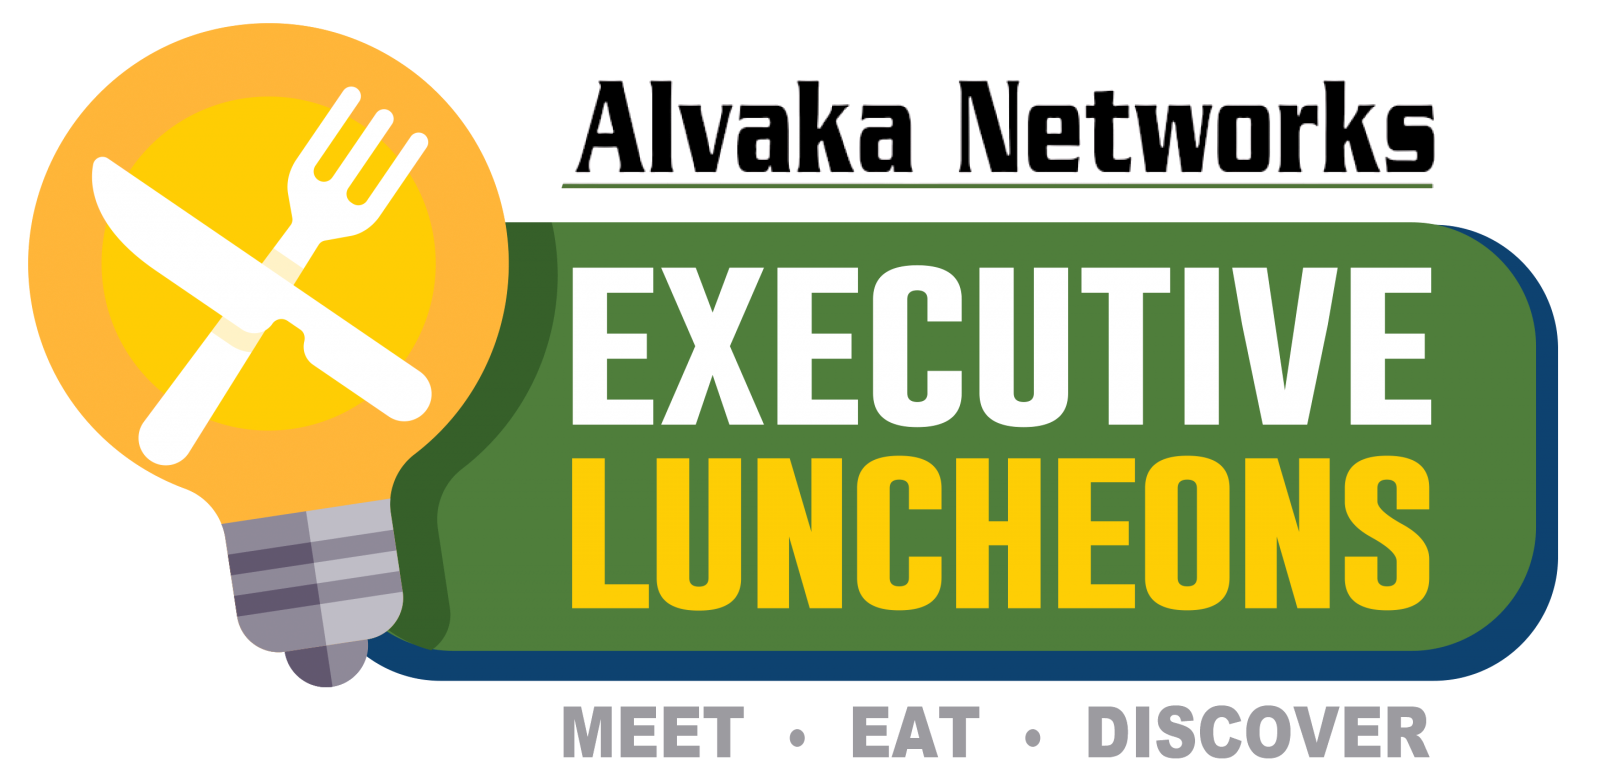 Executive Luncheons - Alvaka Networks